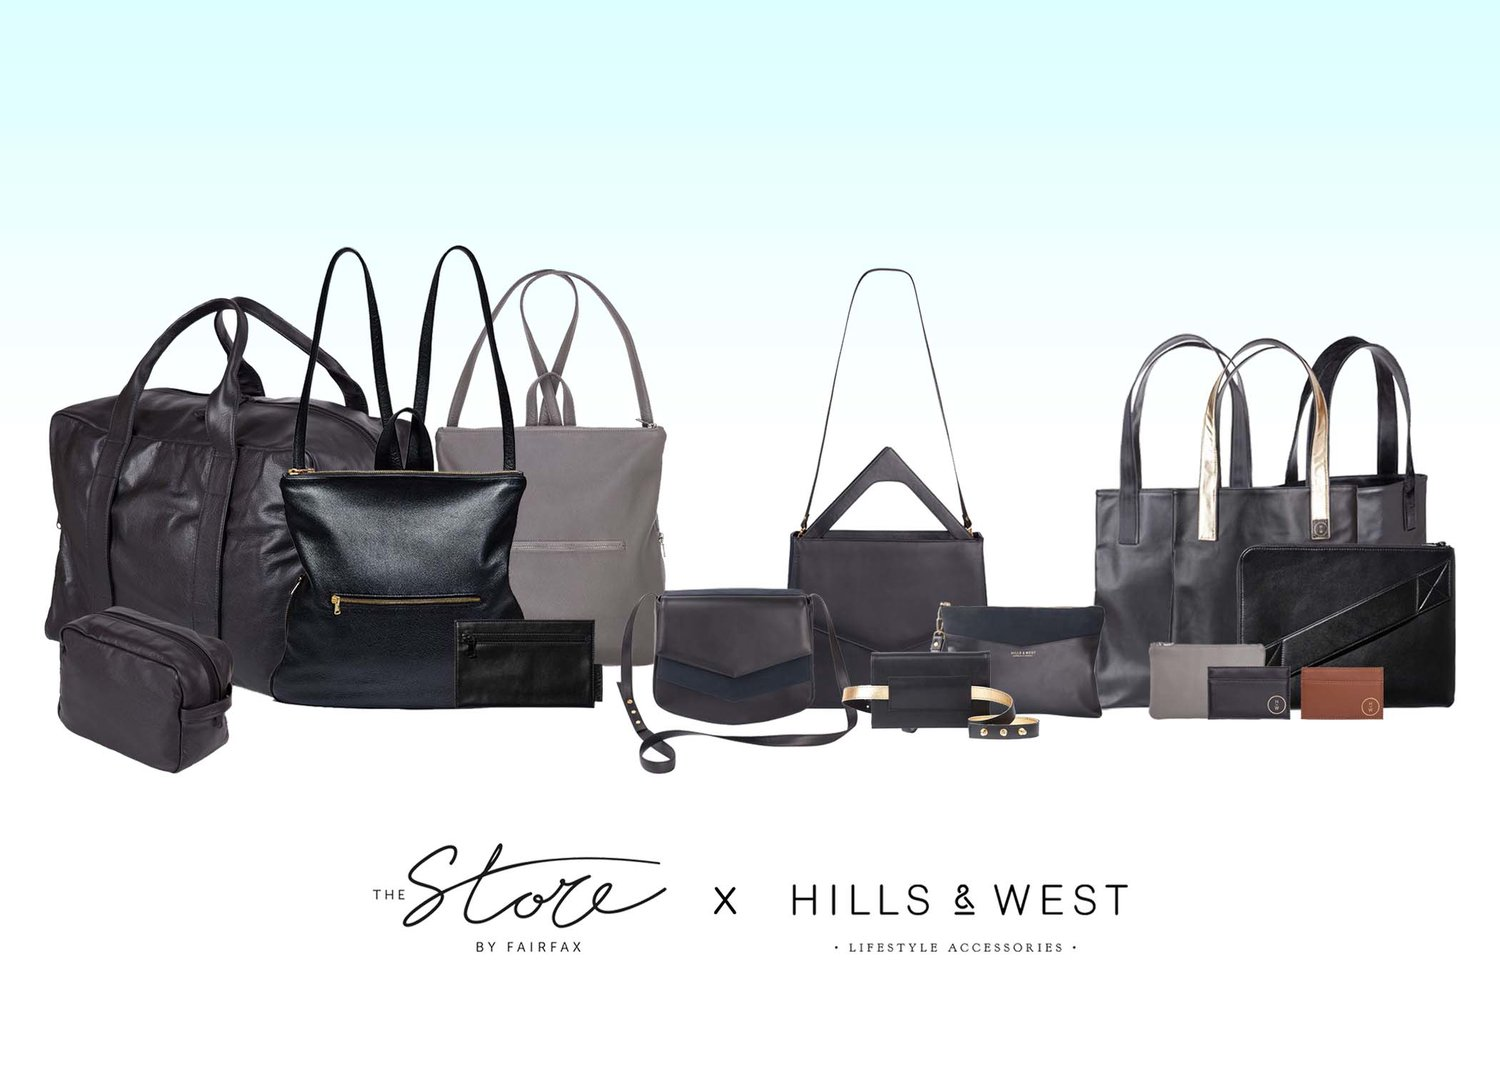 The Store by Fairfax takes on Hills & West